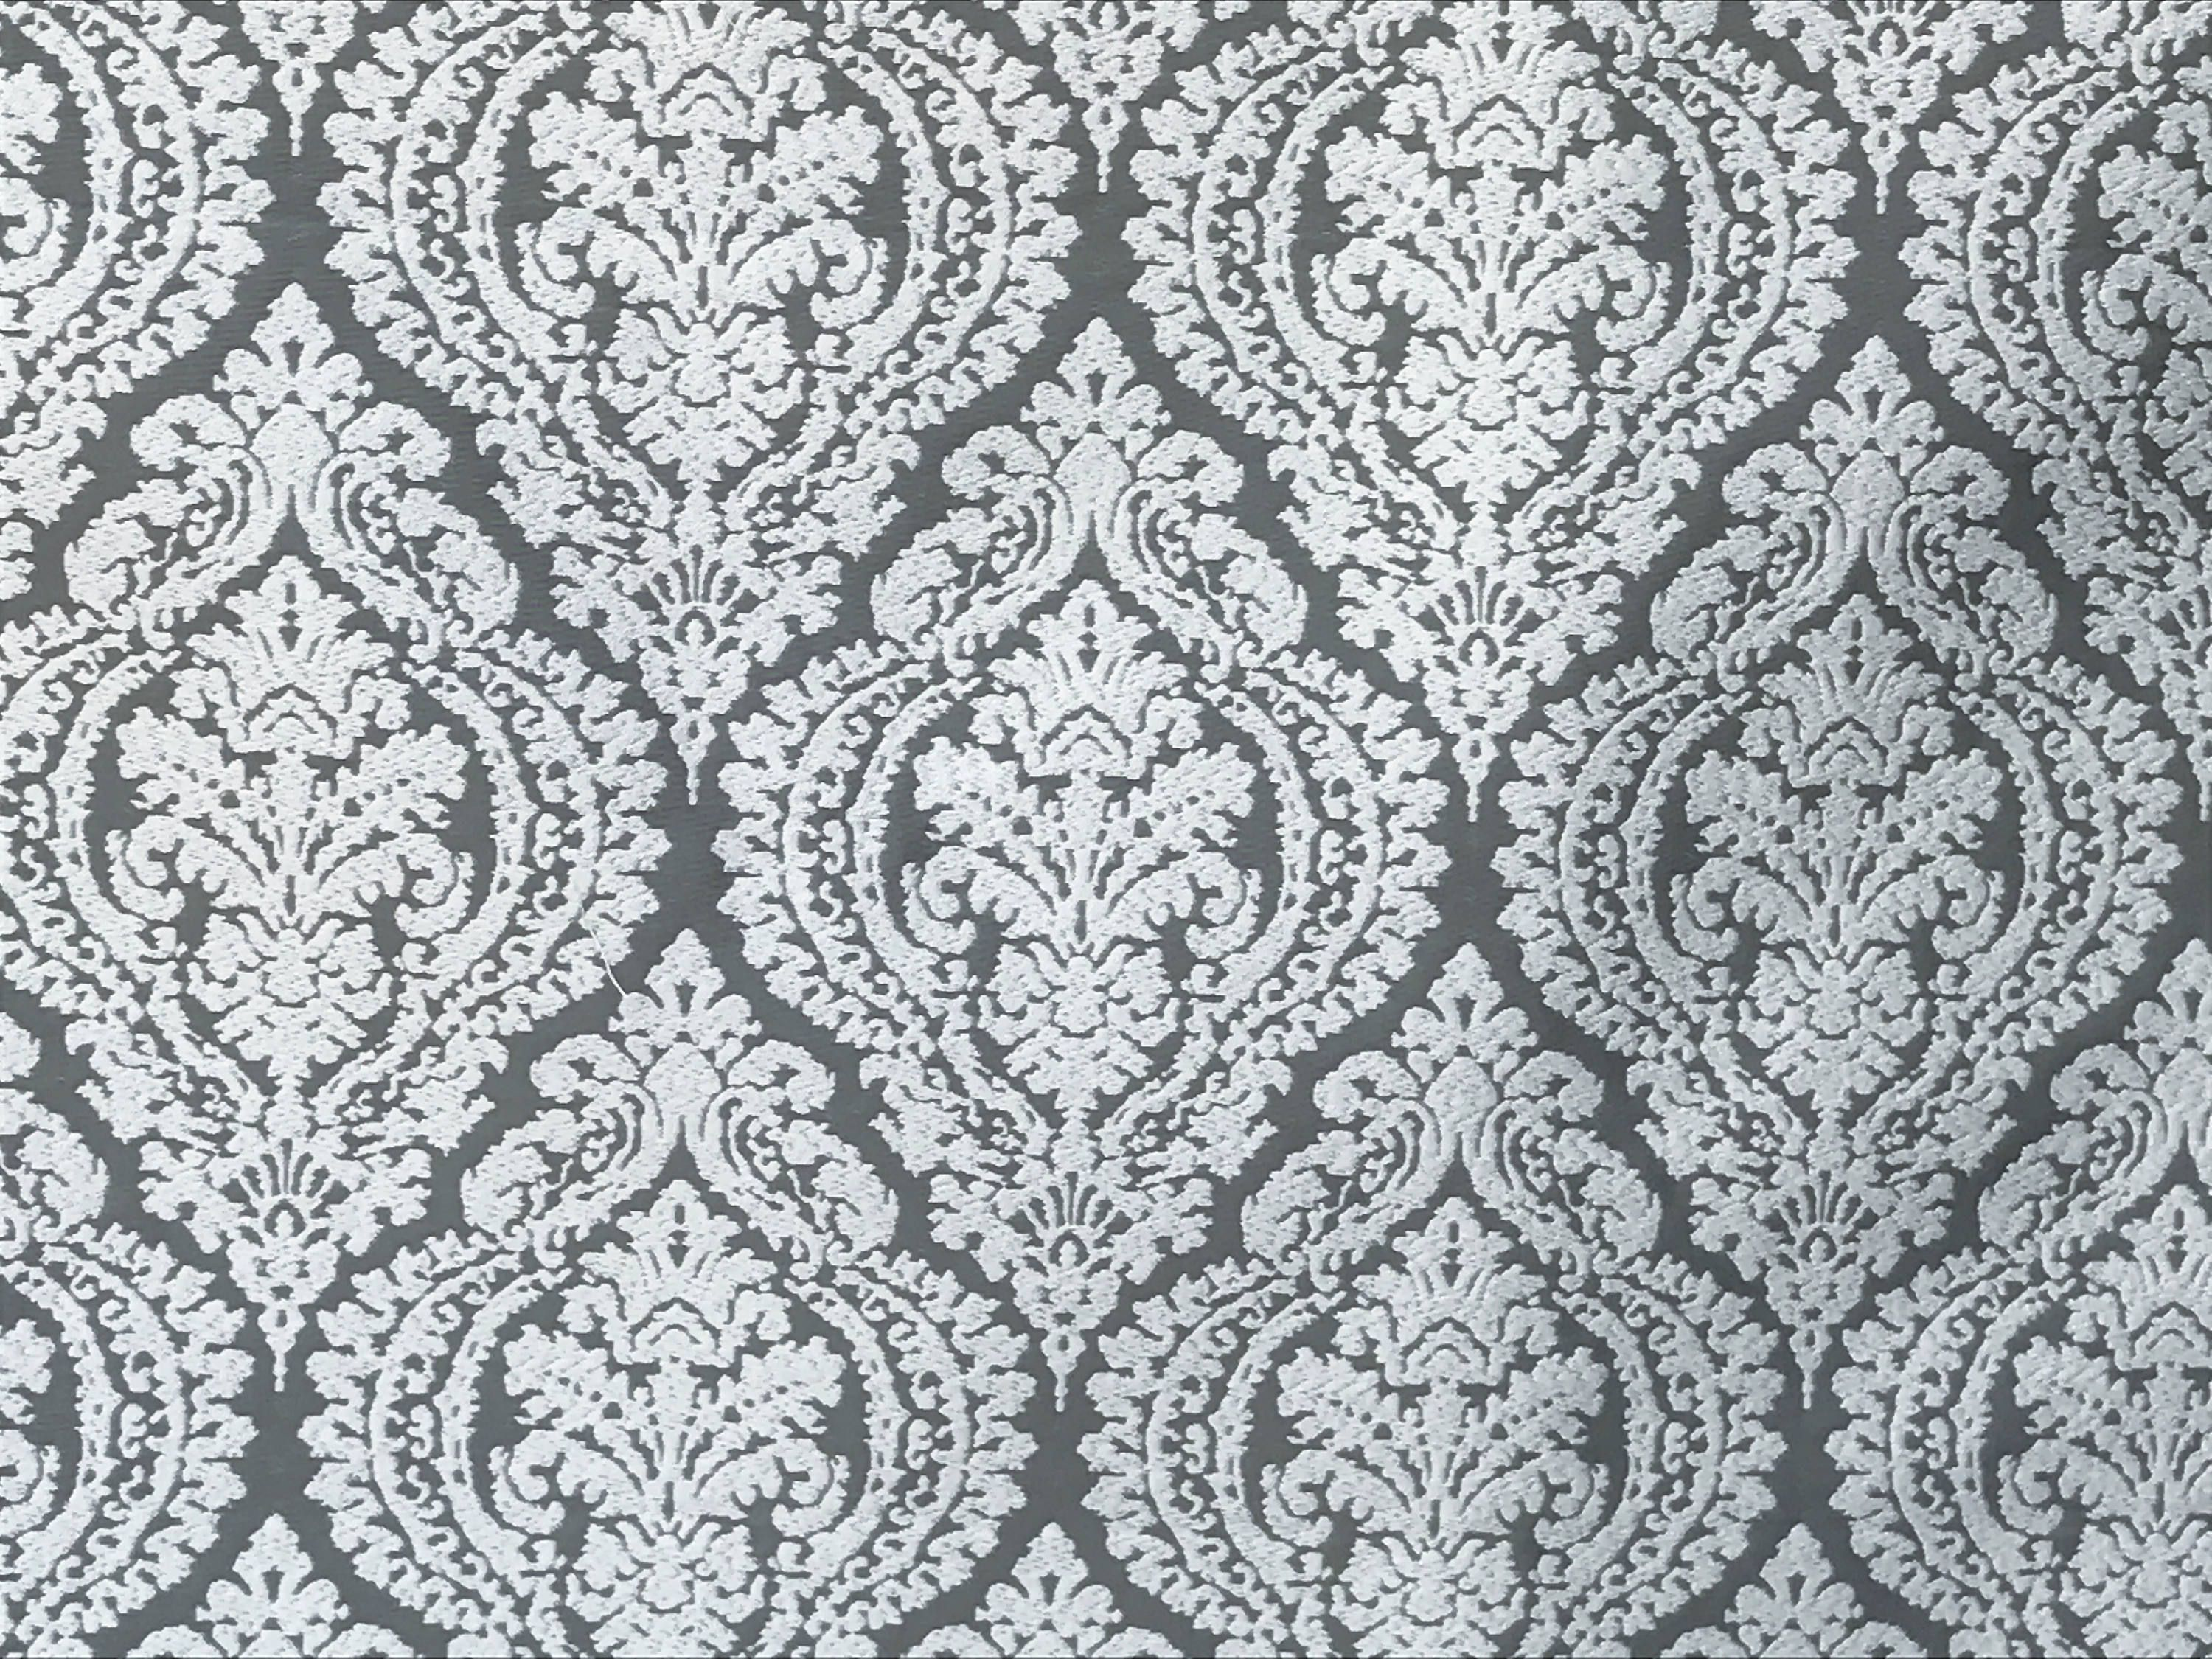 Gray And White Damask Curtain Fabric By The Yard Upholstery Whole Drapery Yardage Window Treatment Sofa For Fabricmart On